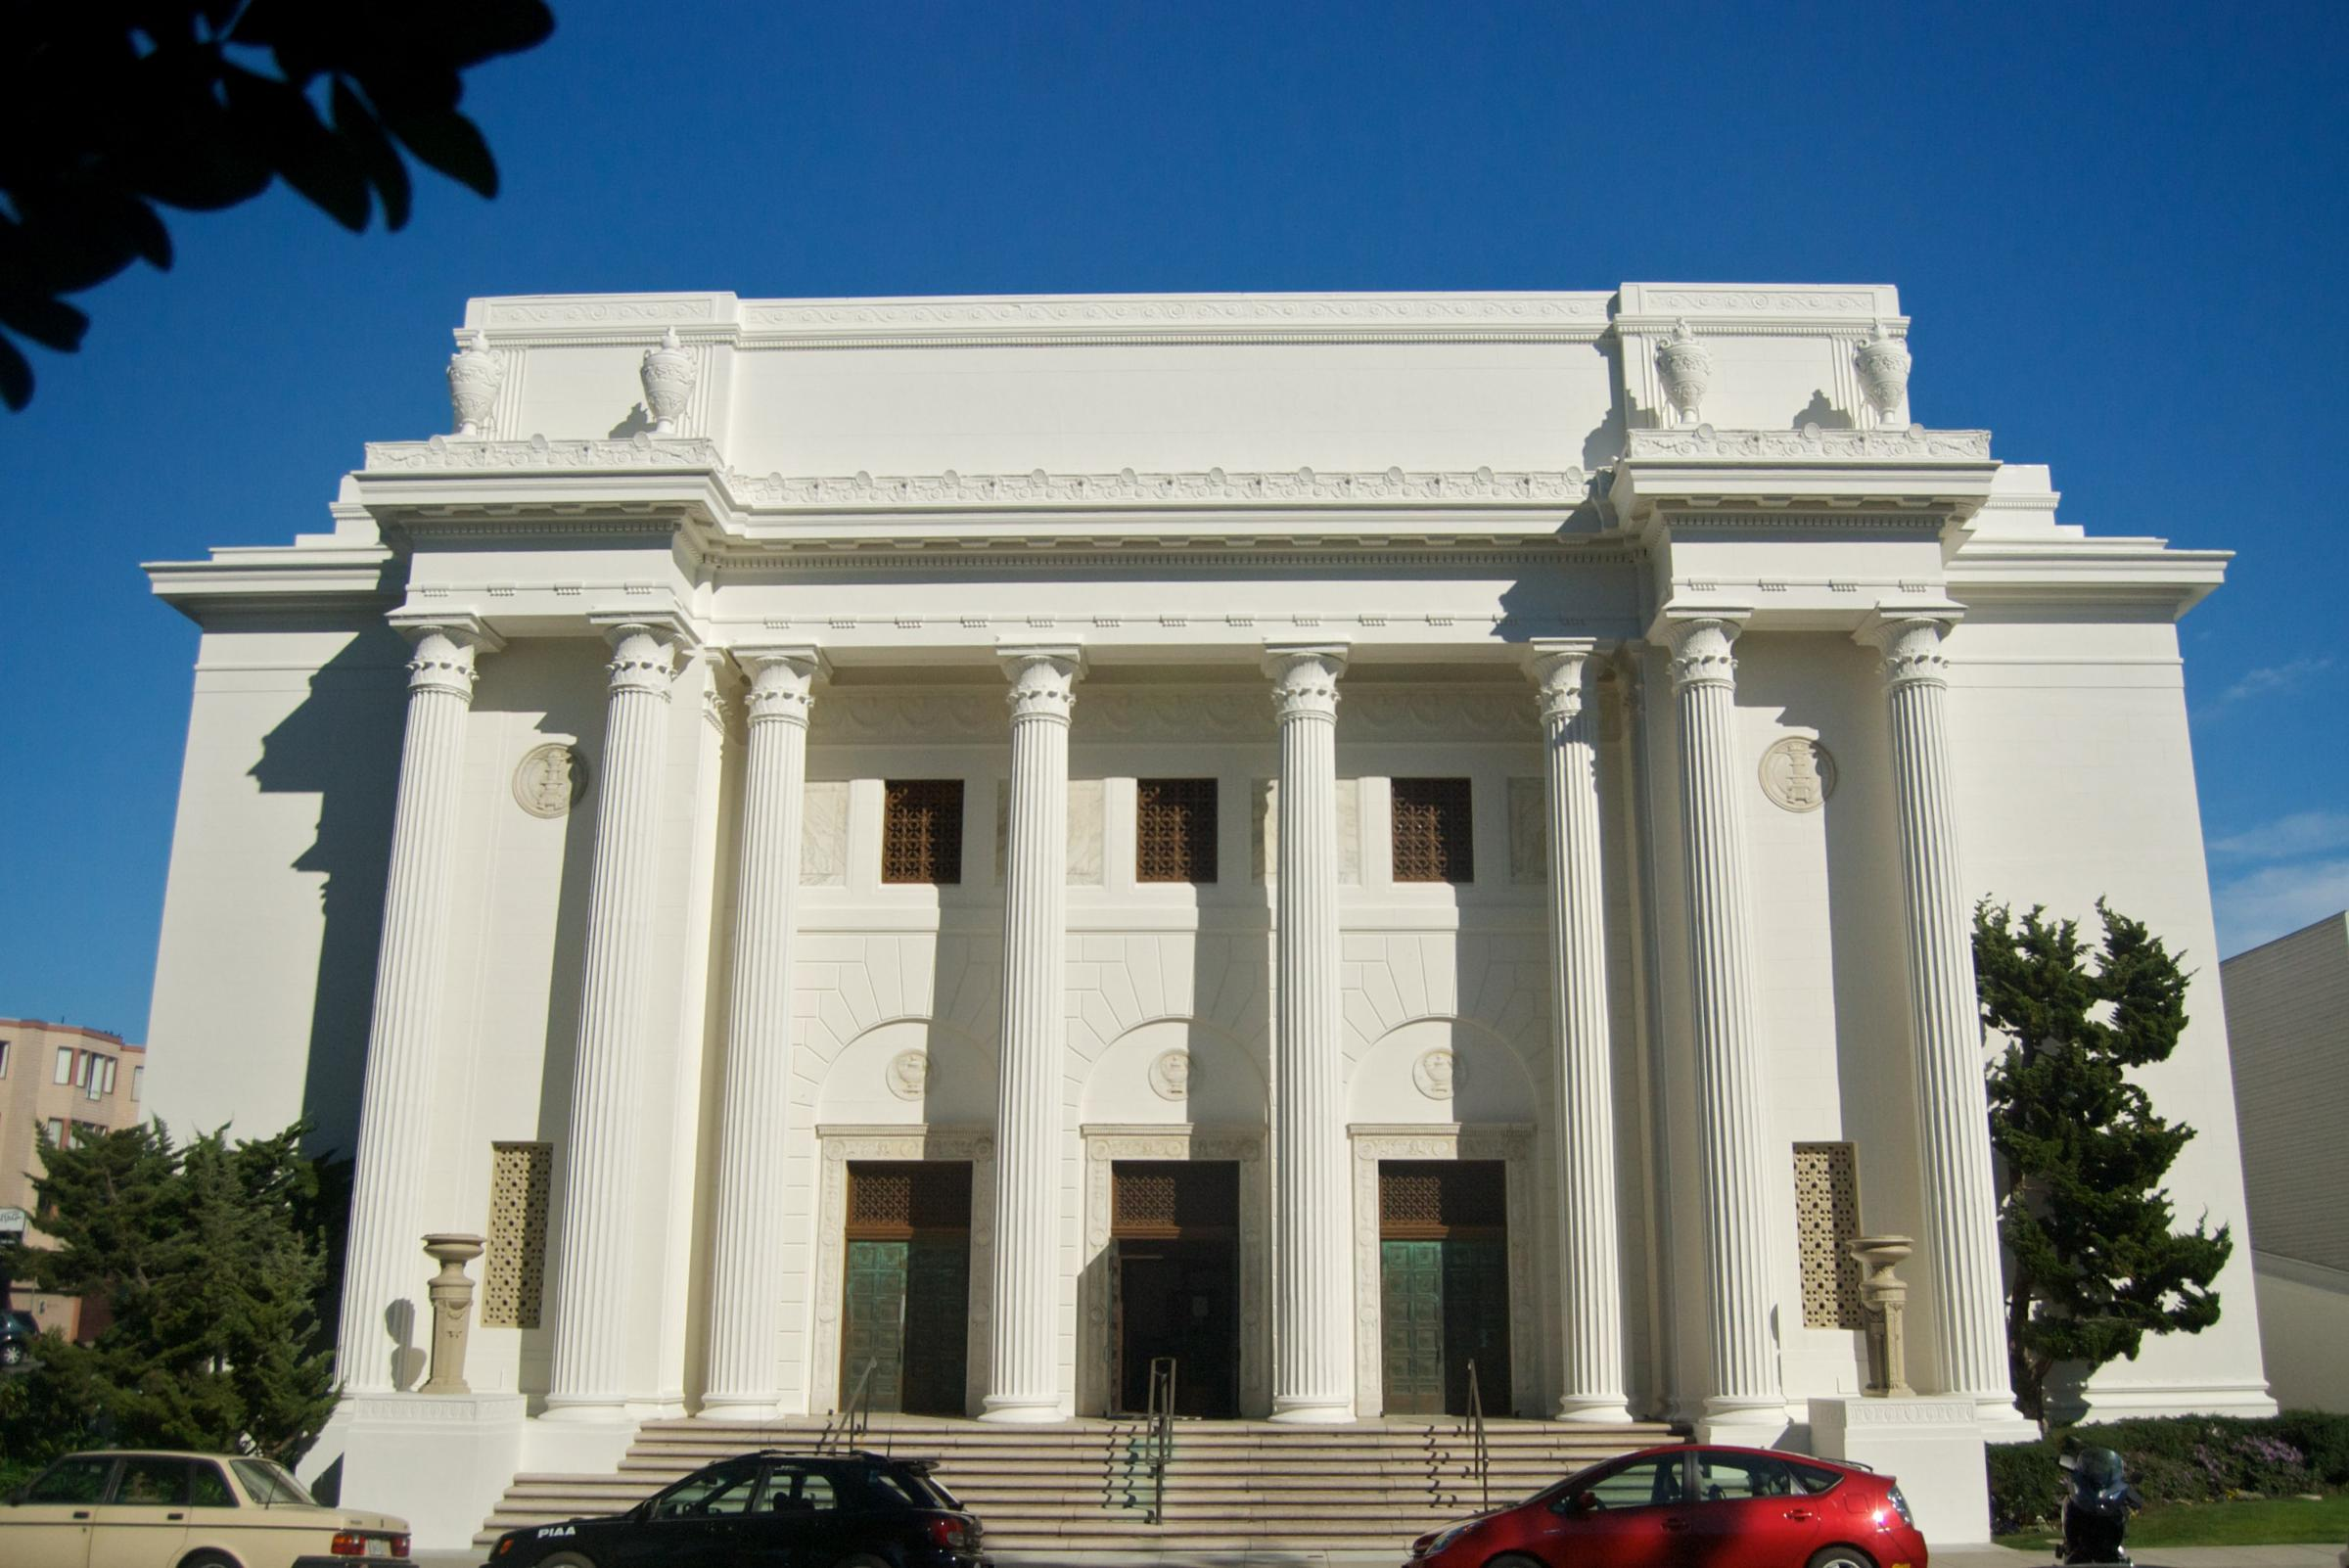 Caption: The Internet Archive, San Francisco., Credit: Under CC license from Flickr user Beatrice Murch